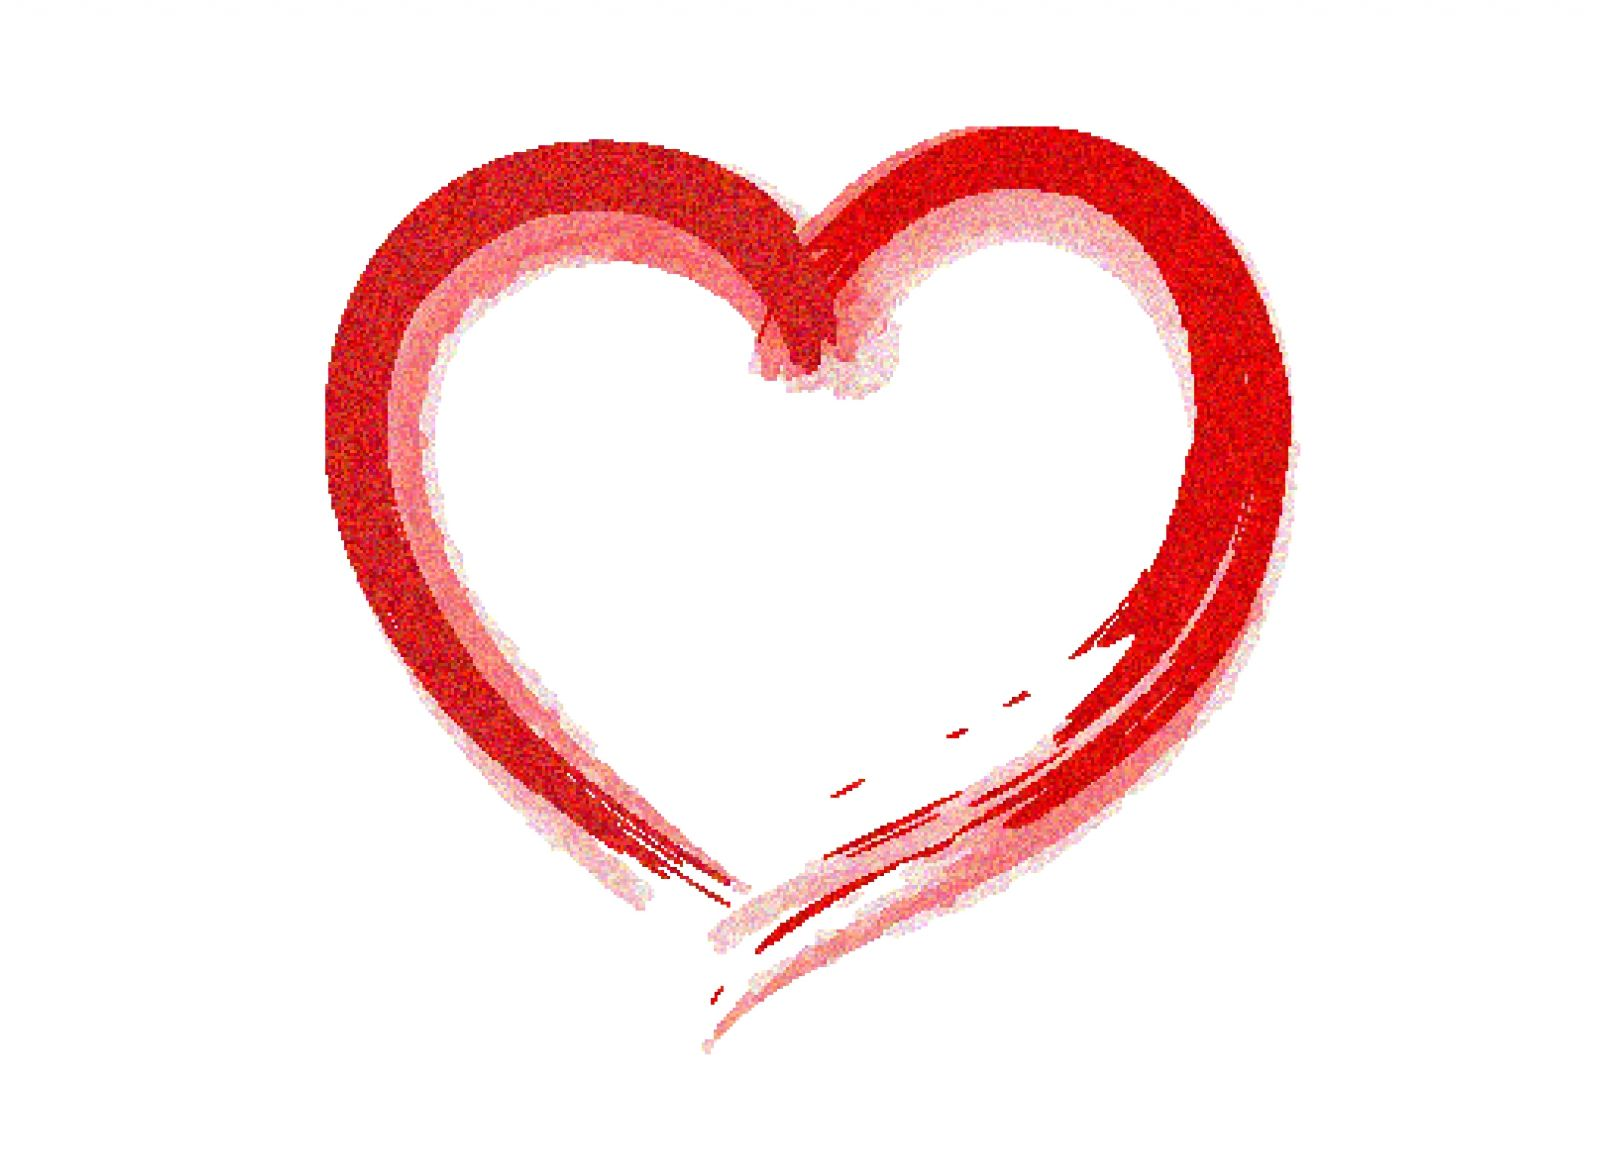 rough heart | Clip Art for Projects | Pinterest